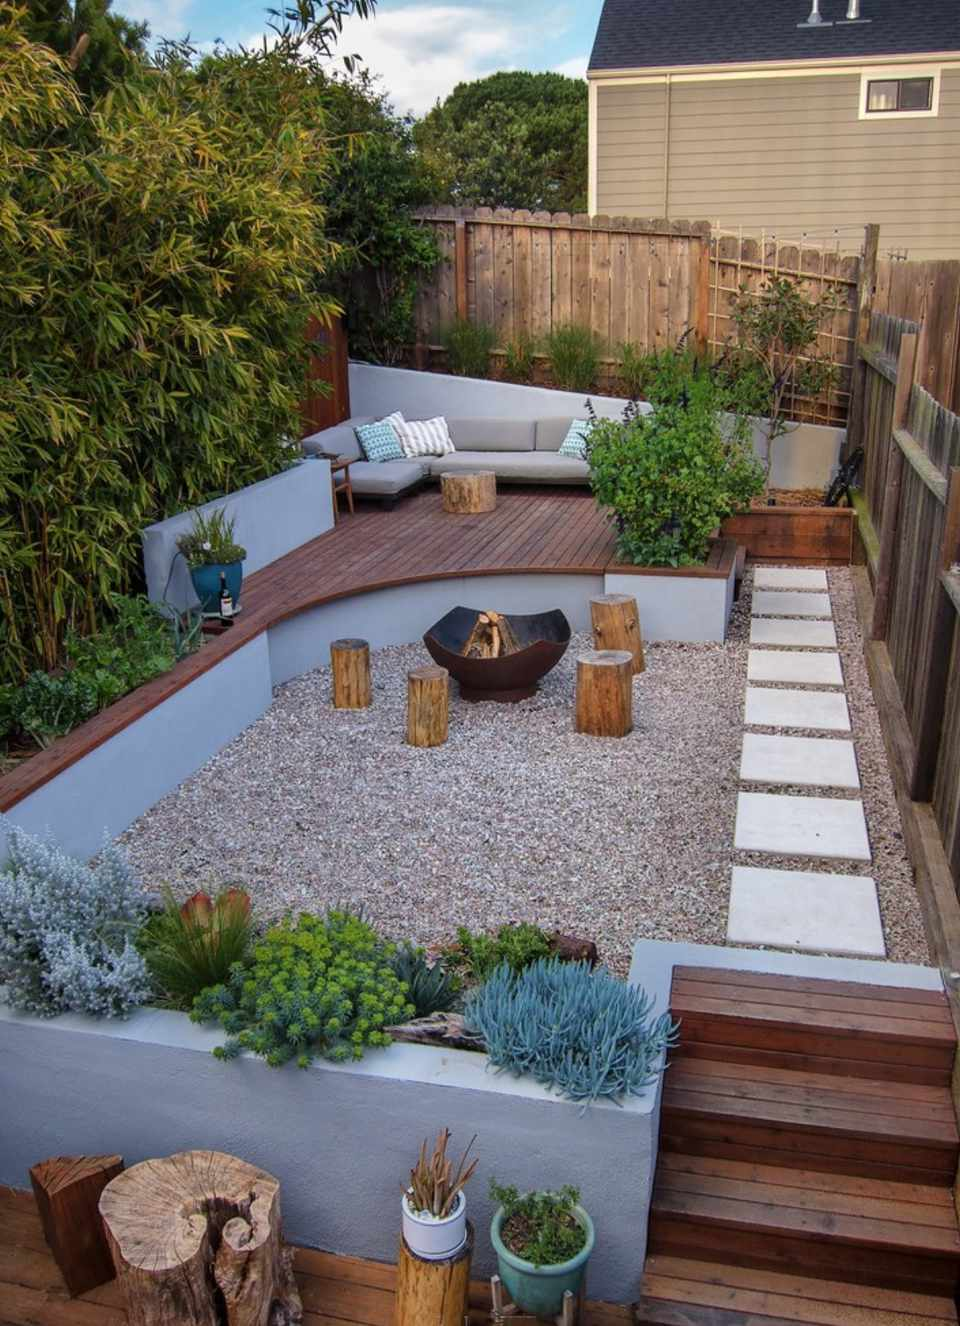 50 Backyard Landscaping Ideas to Inspire You on idea landscaping small garden design, deck idea garden design, idea water garden book, asian style patio design, idea living outdoor backyard design, japanese backyards waterfalls design, new zealand water design, indoor water fountain design, idea patio design with pergola, outdoor garden fountain design, exterior landscape design, outdoor landscape garden design, outdoor wall water fountains design, idea small garden bench, natural landscape design,